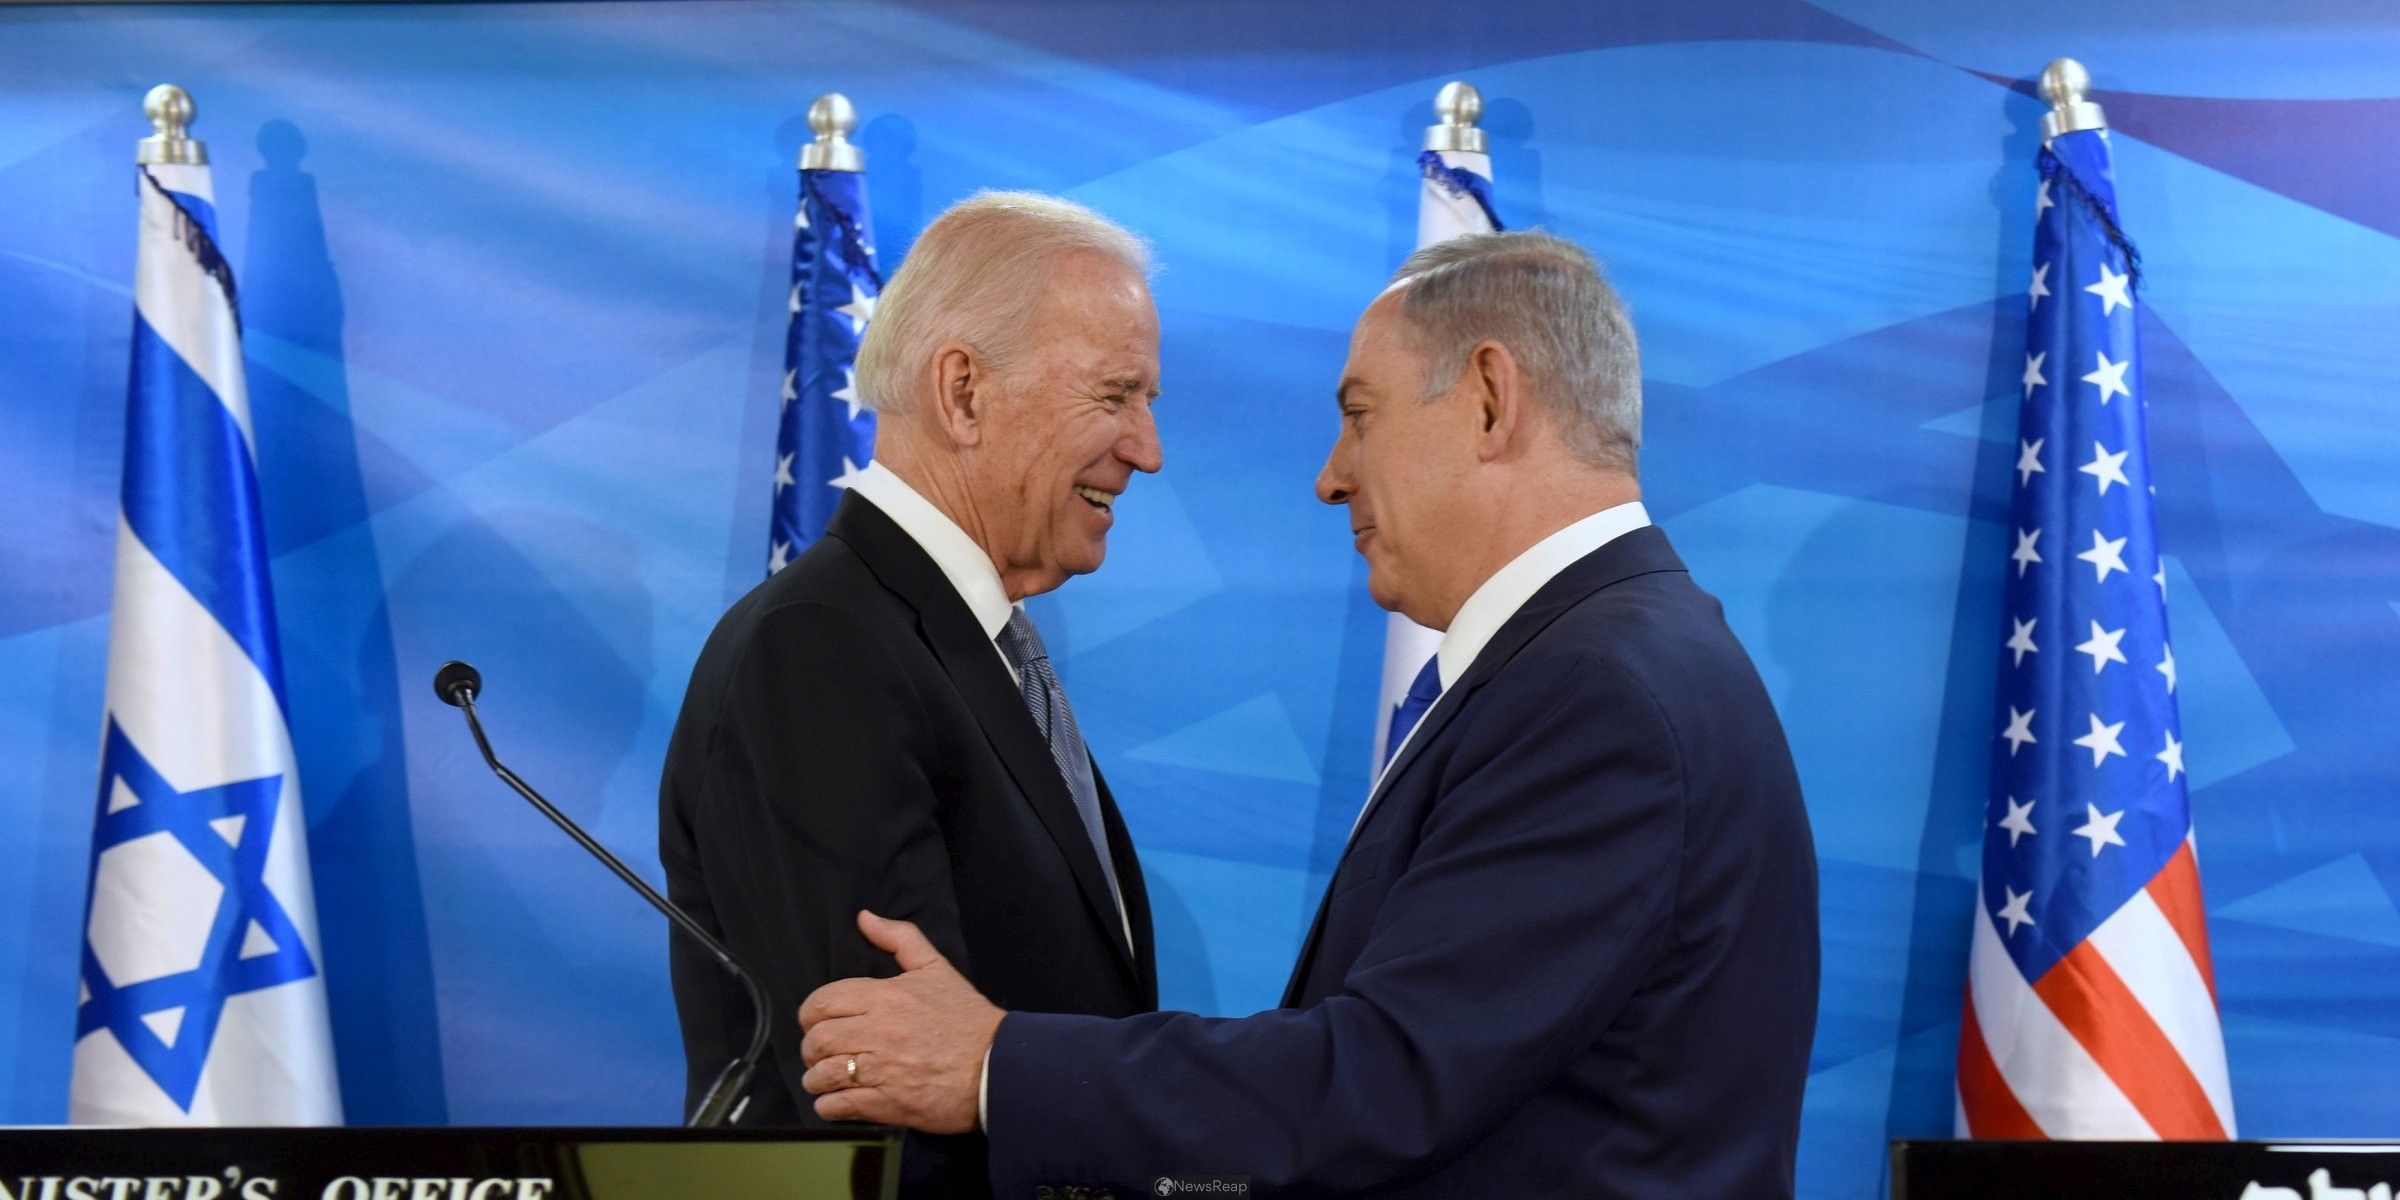 Israel's Netanyahu congratulates Biden on U.S. election win, thanks Trump